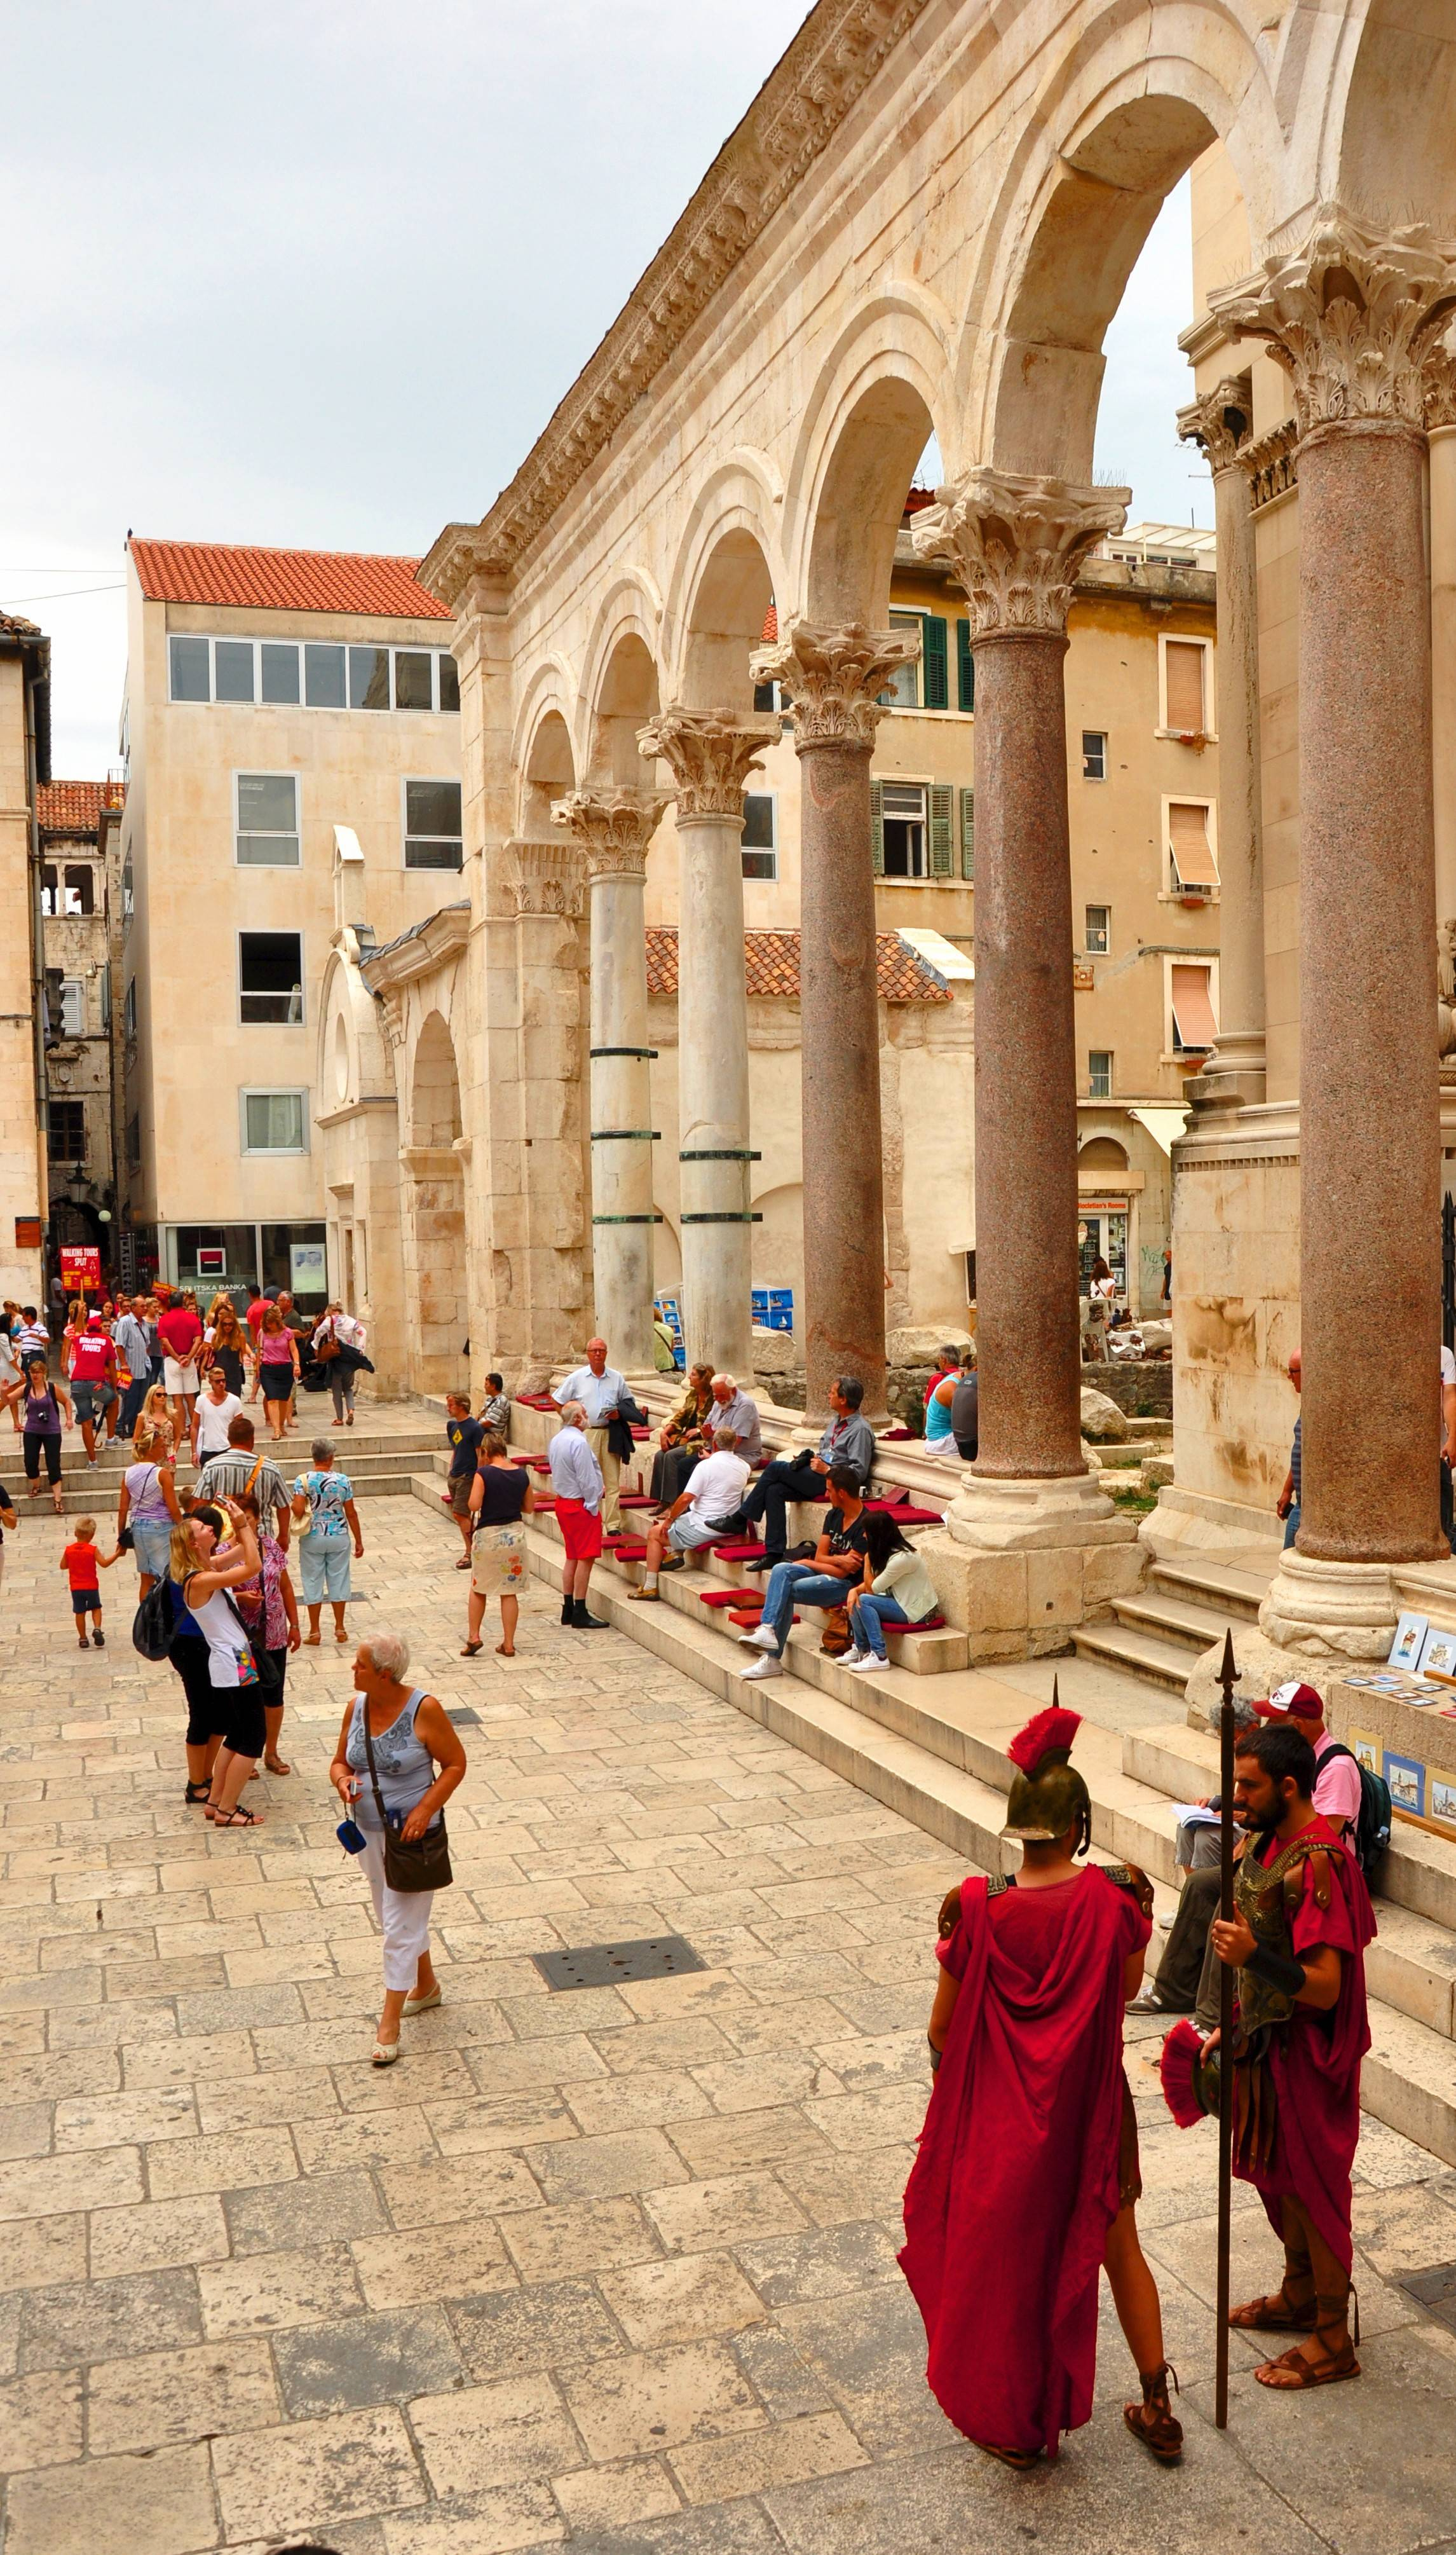 Roman columns flank the courtyard of Diocletian's Palace in Split, Croatia.